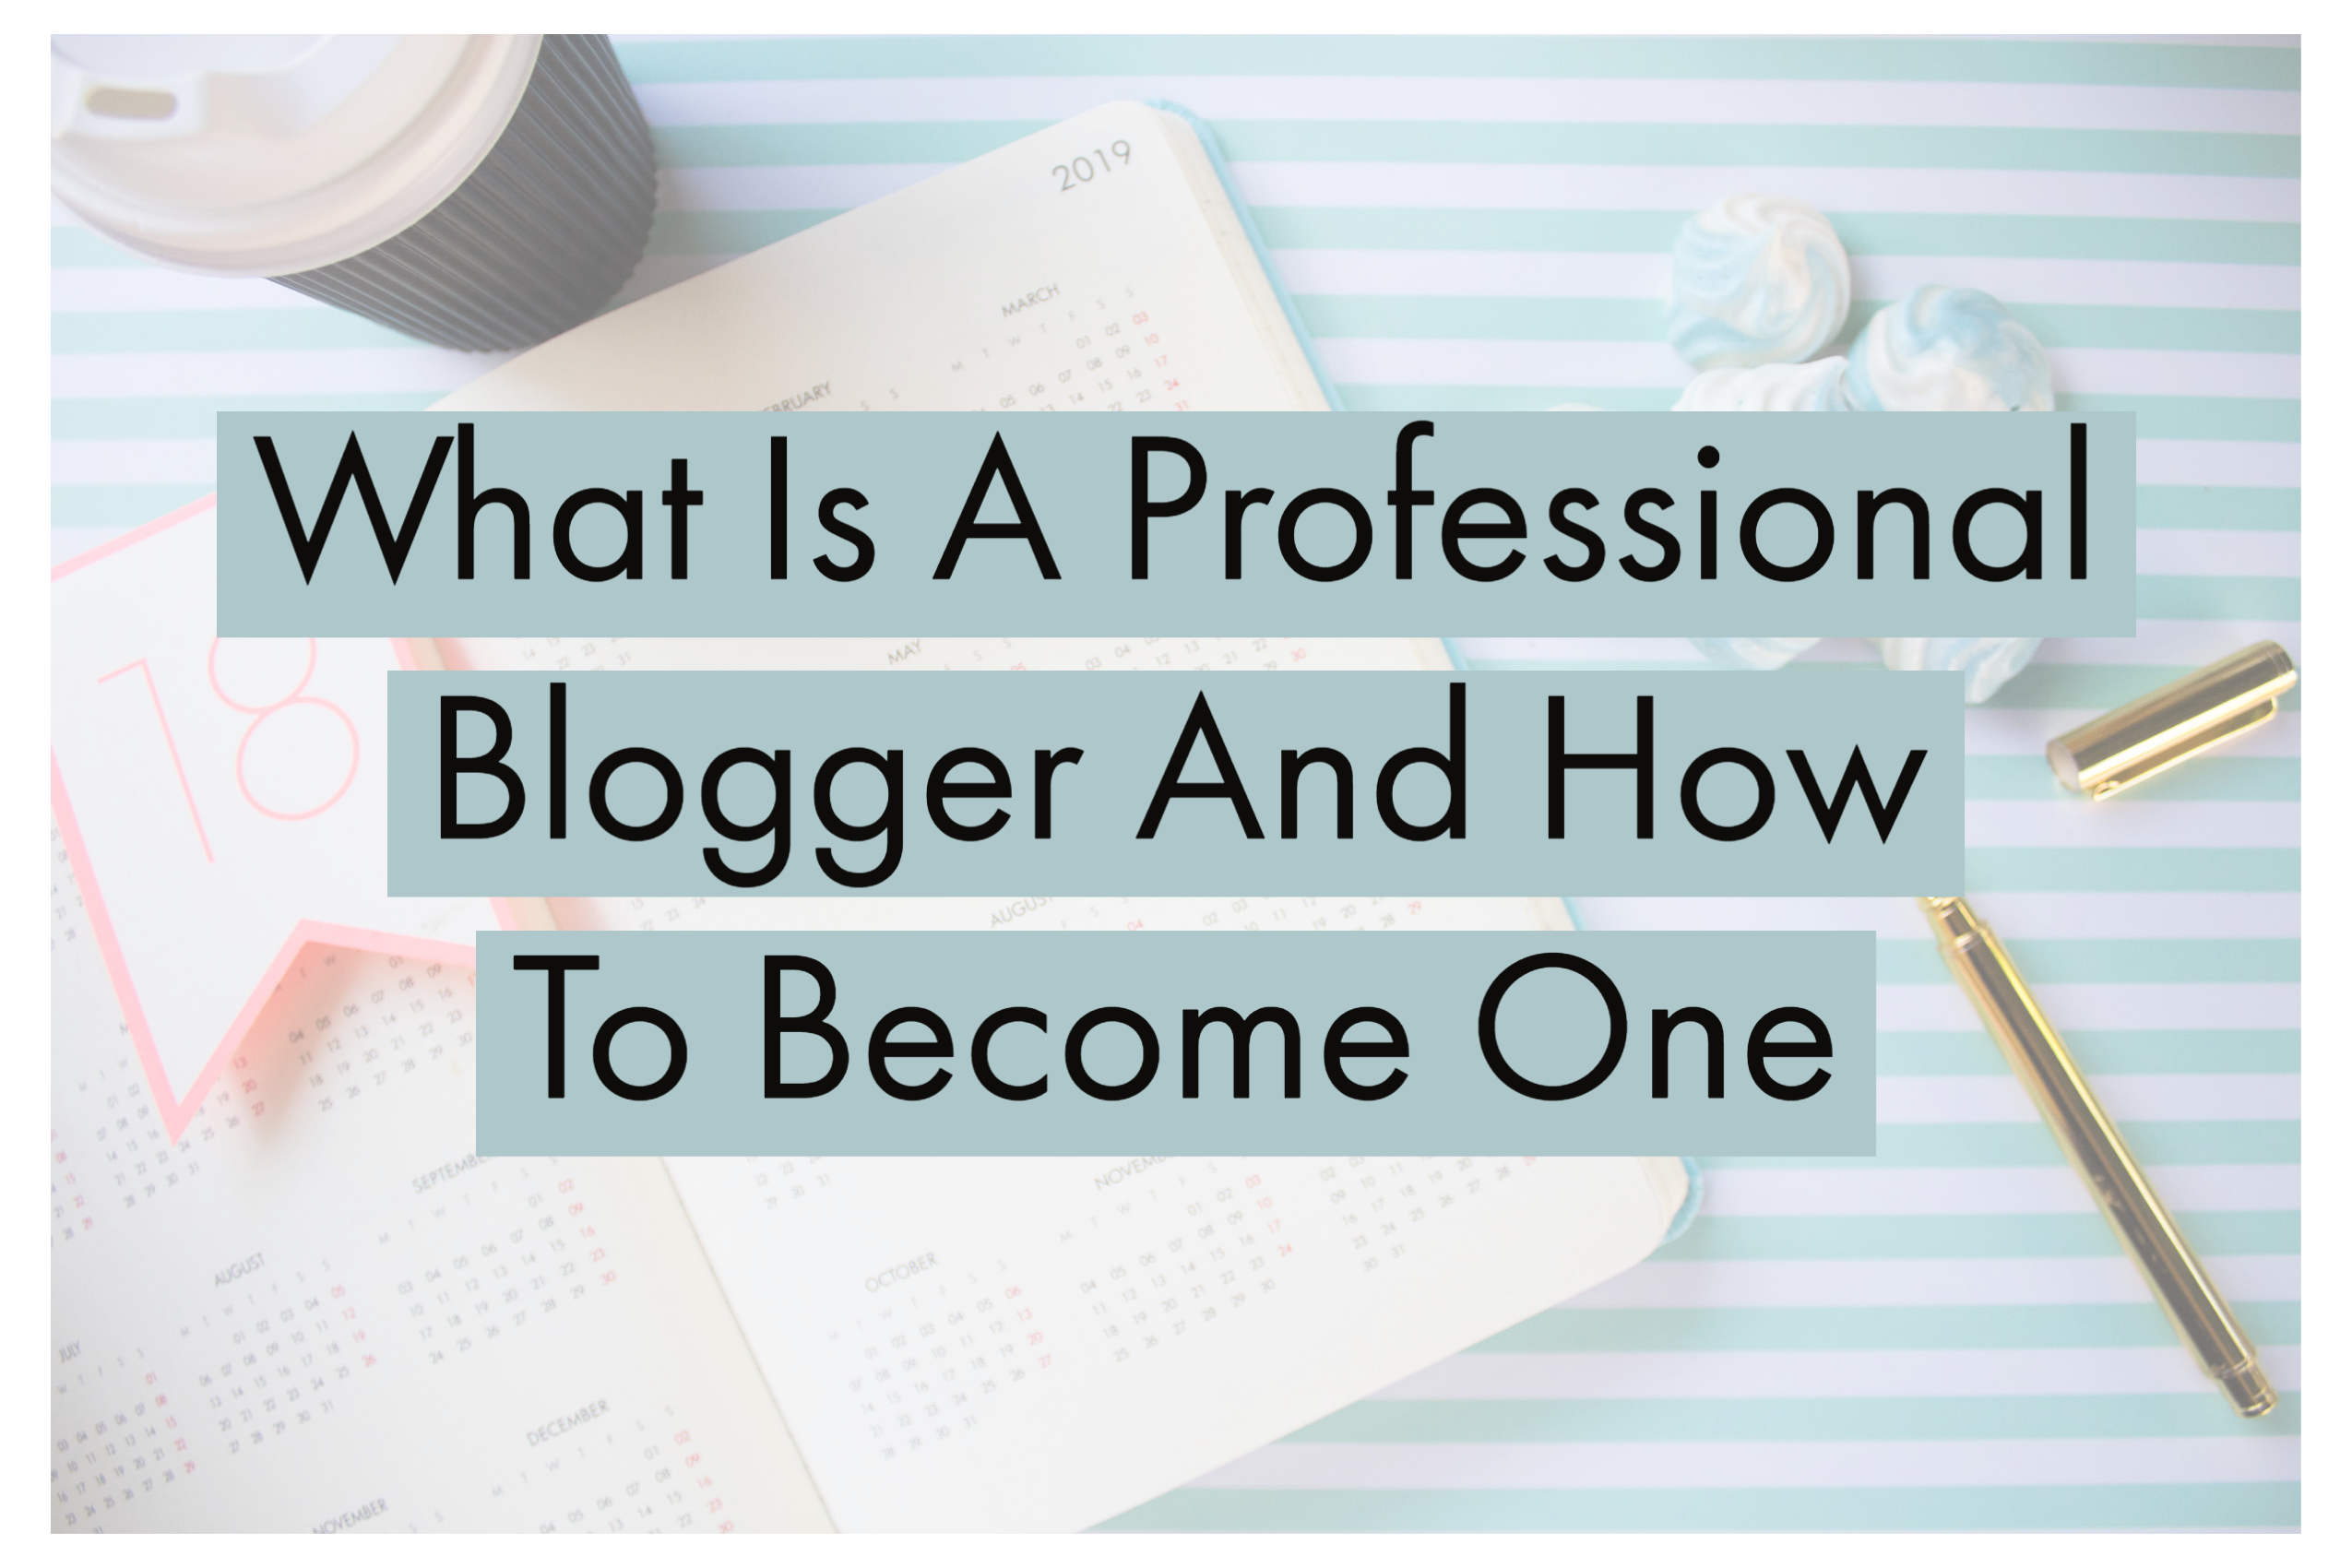 What Is A Professional Blogger And How To Become One